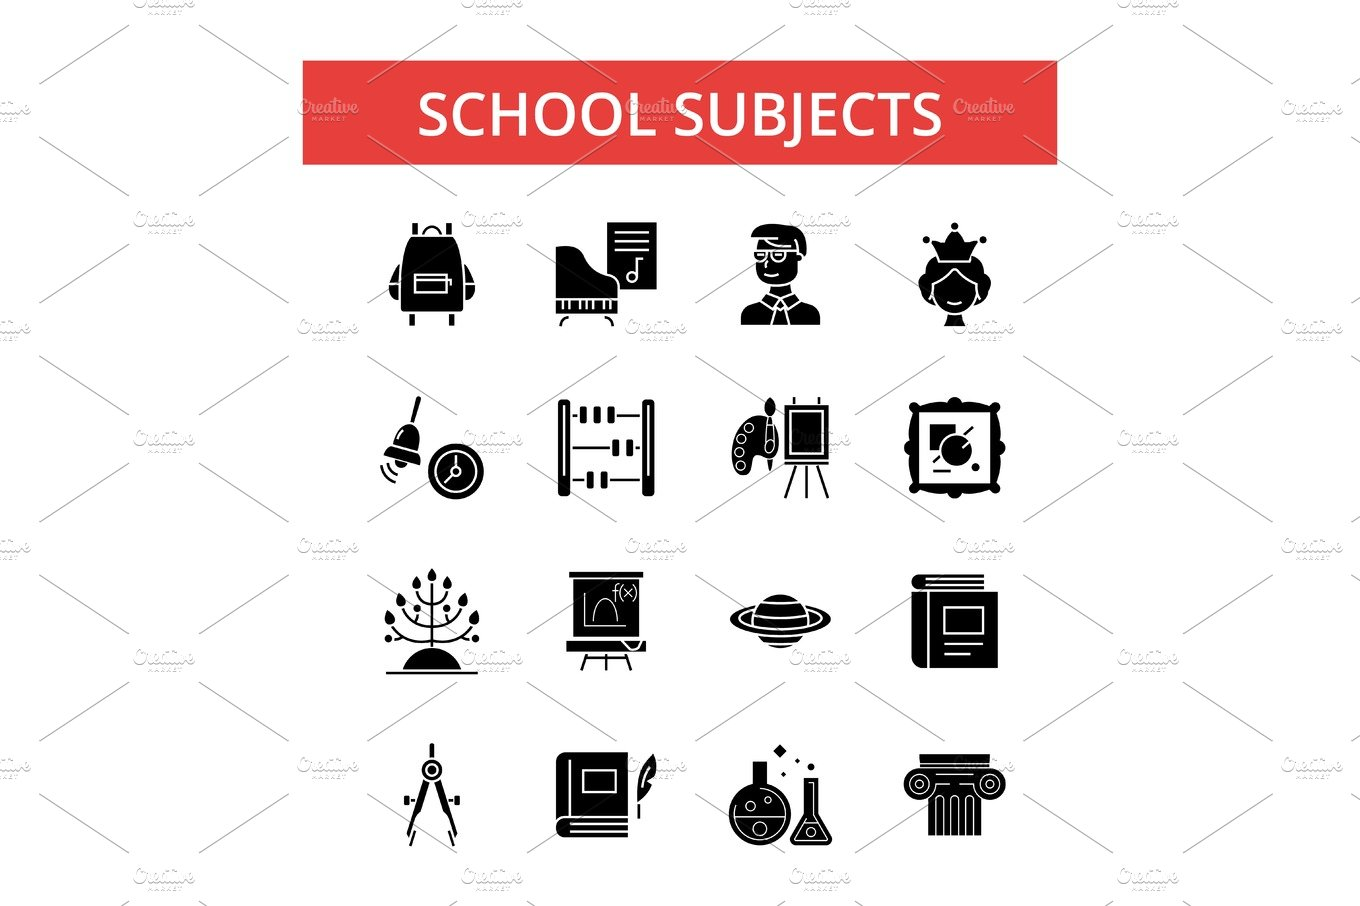 school subjects illustration thin line icons linear flat signs